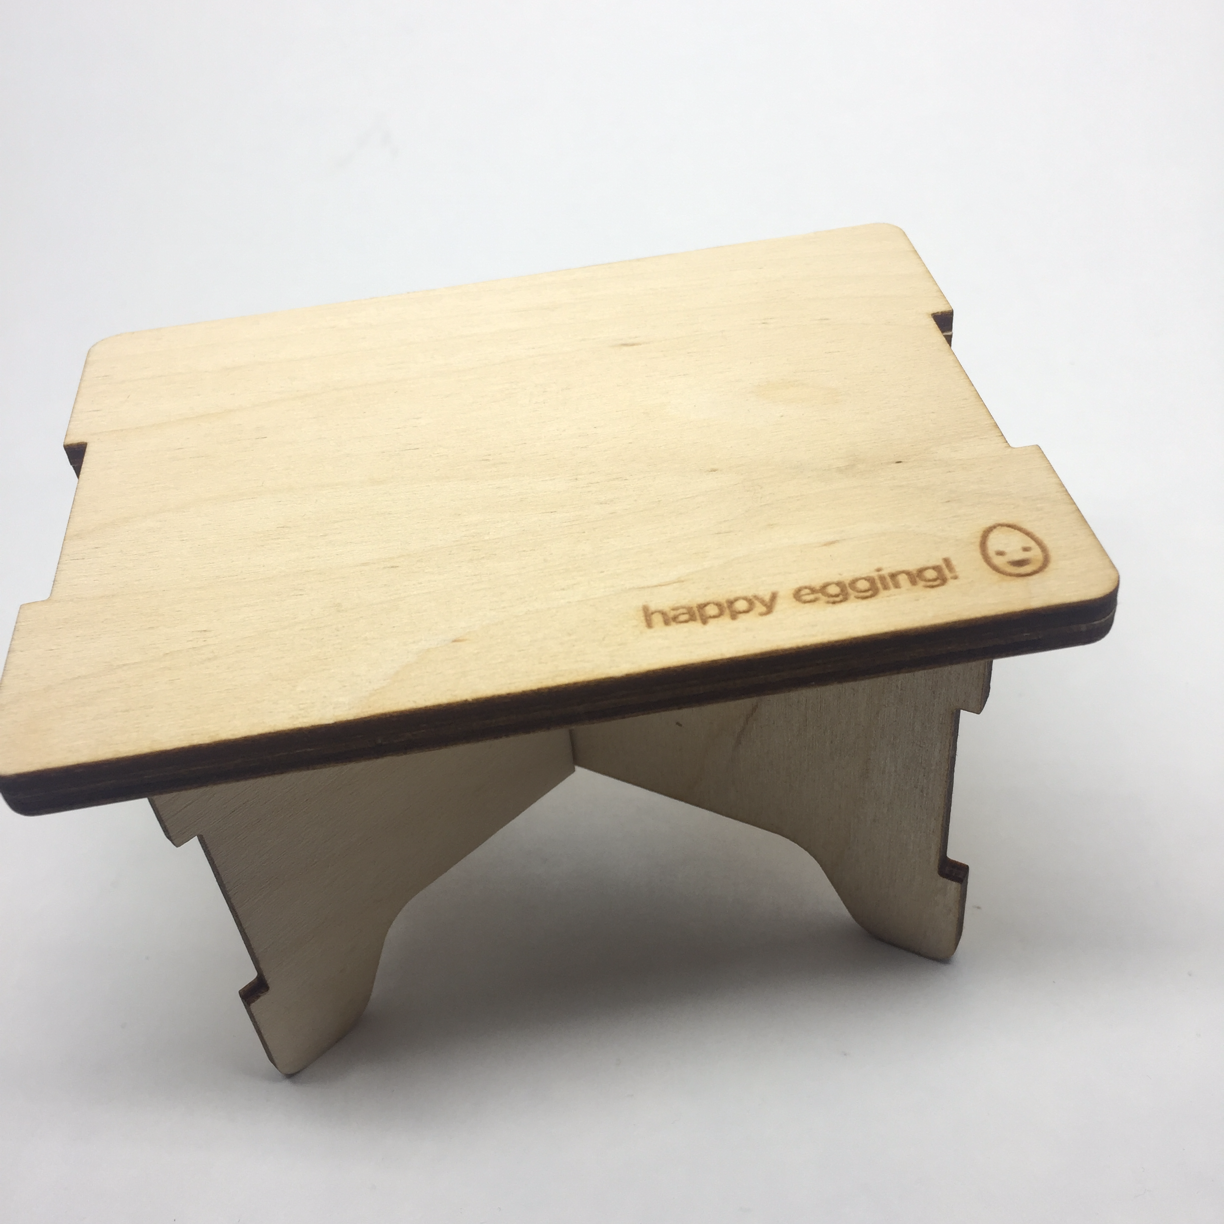 Happy Egging Self-Storing Lathe Table